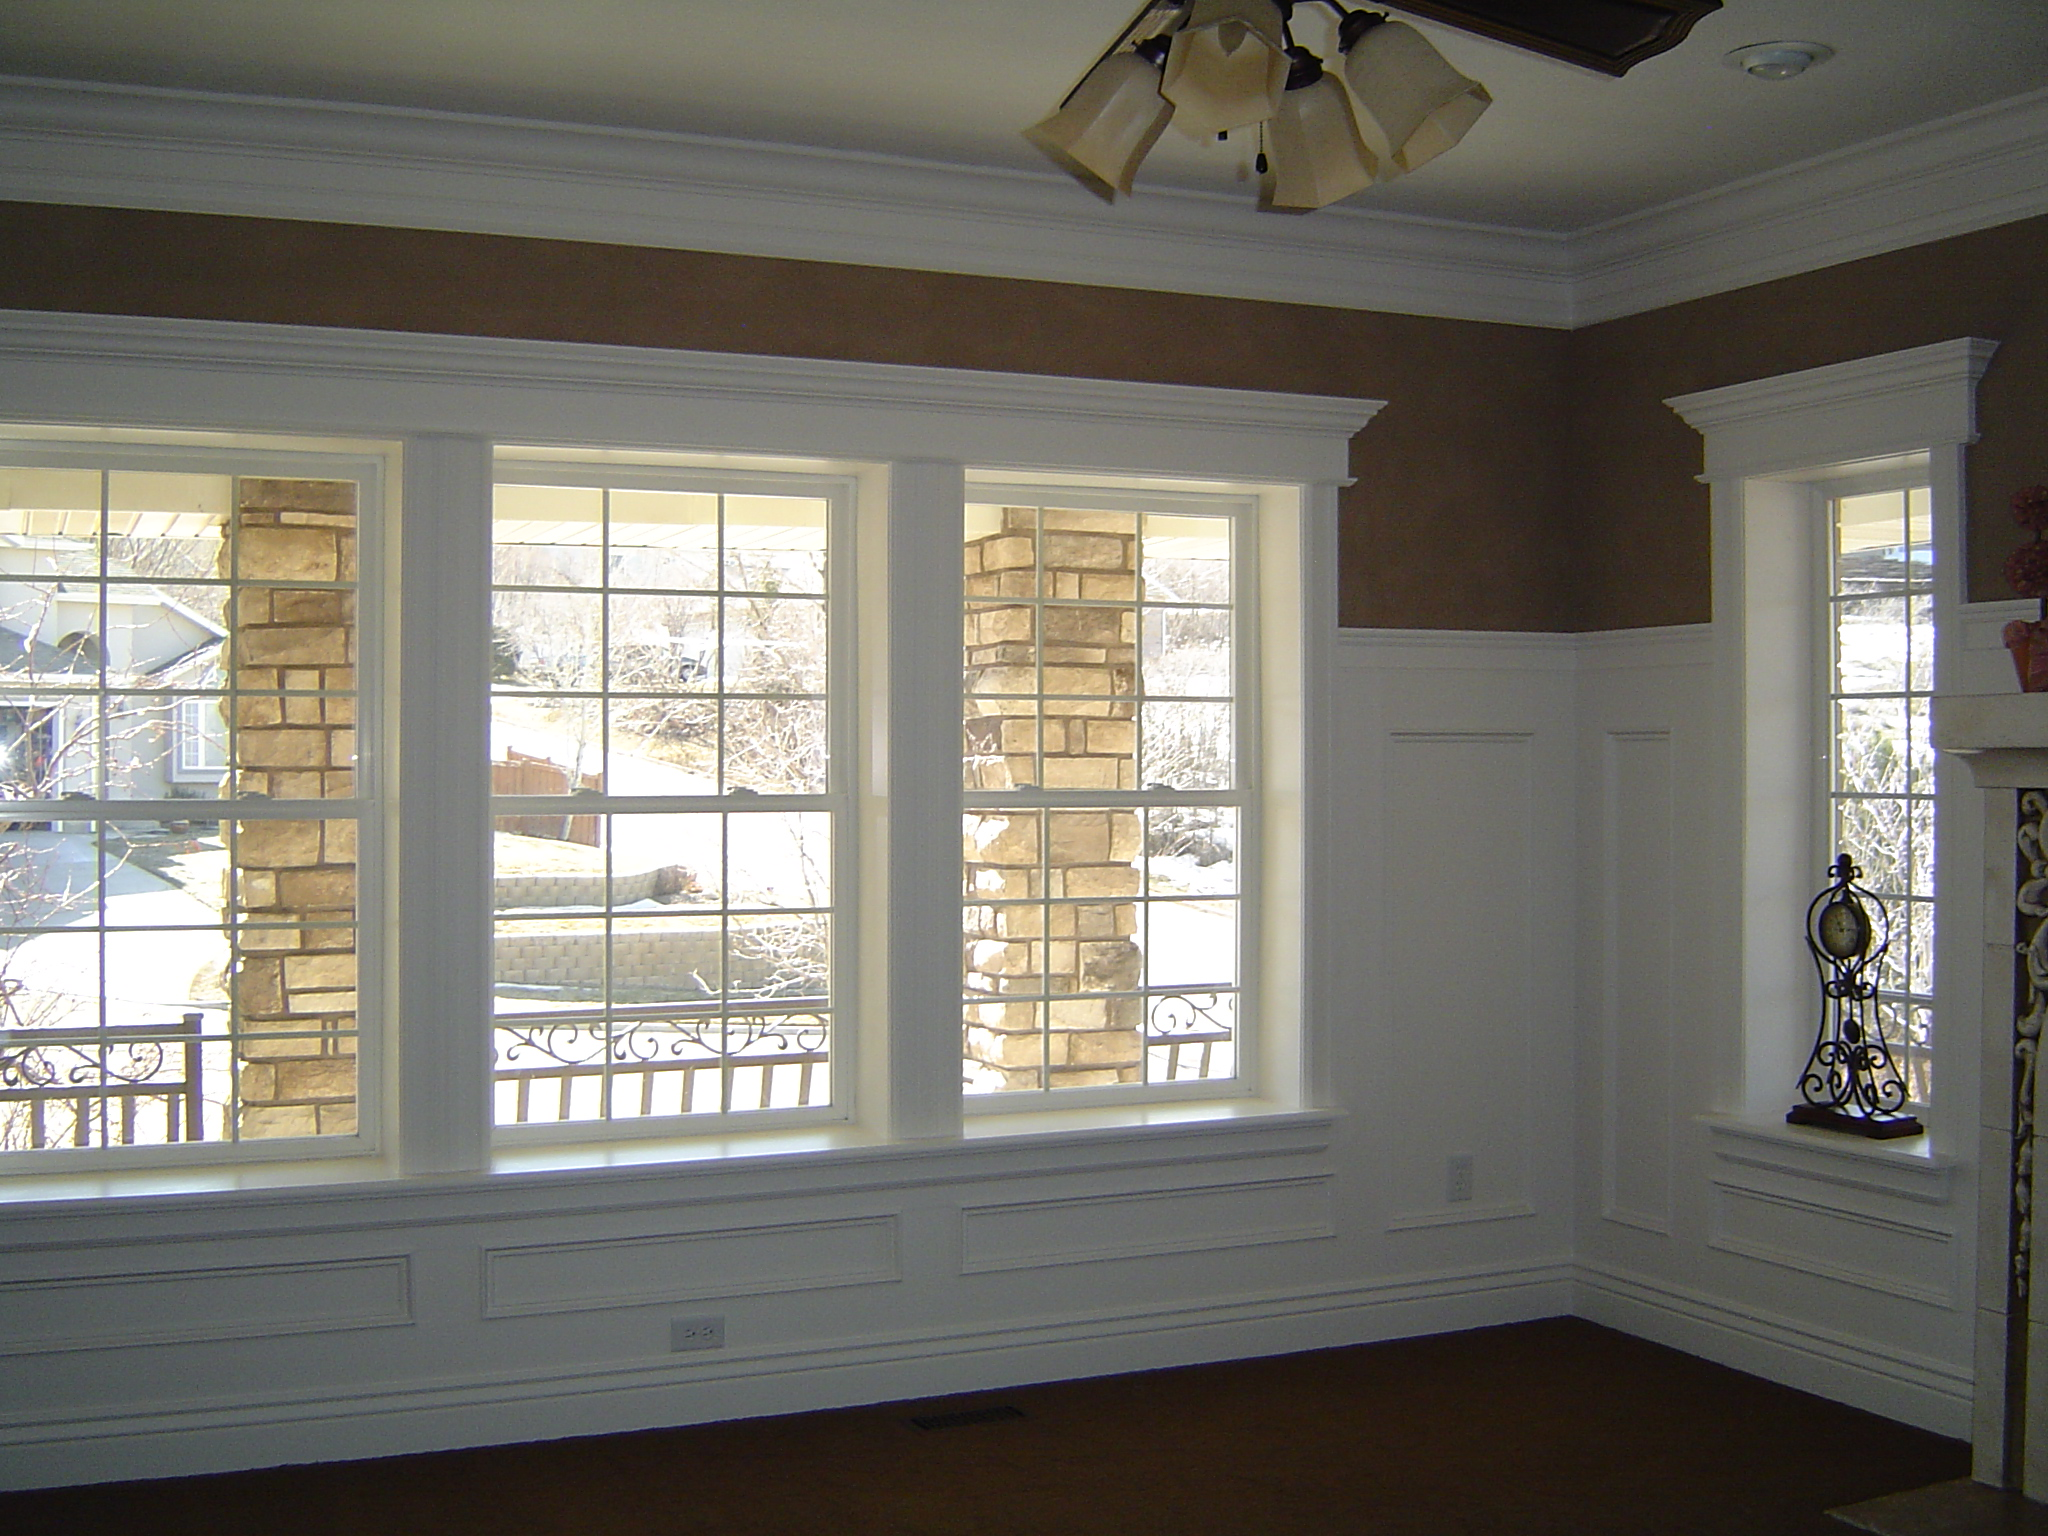 Window trim molding - Colonial Moulding For The Home Pinterest Colonial Moldings And Window Trims